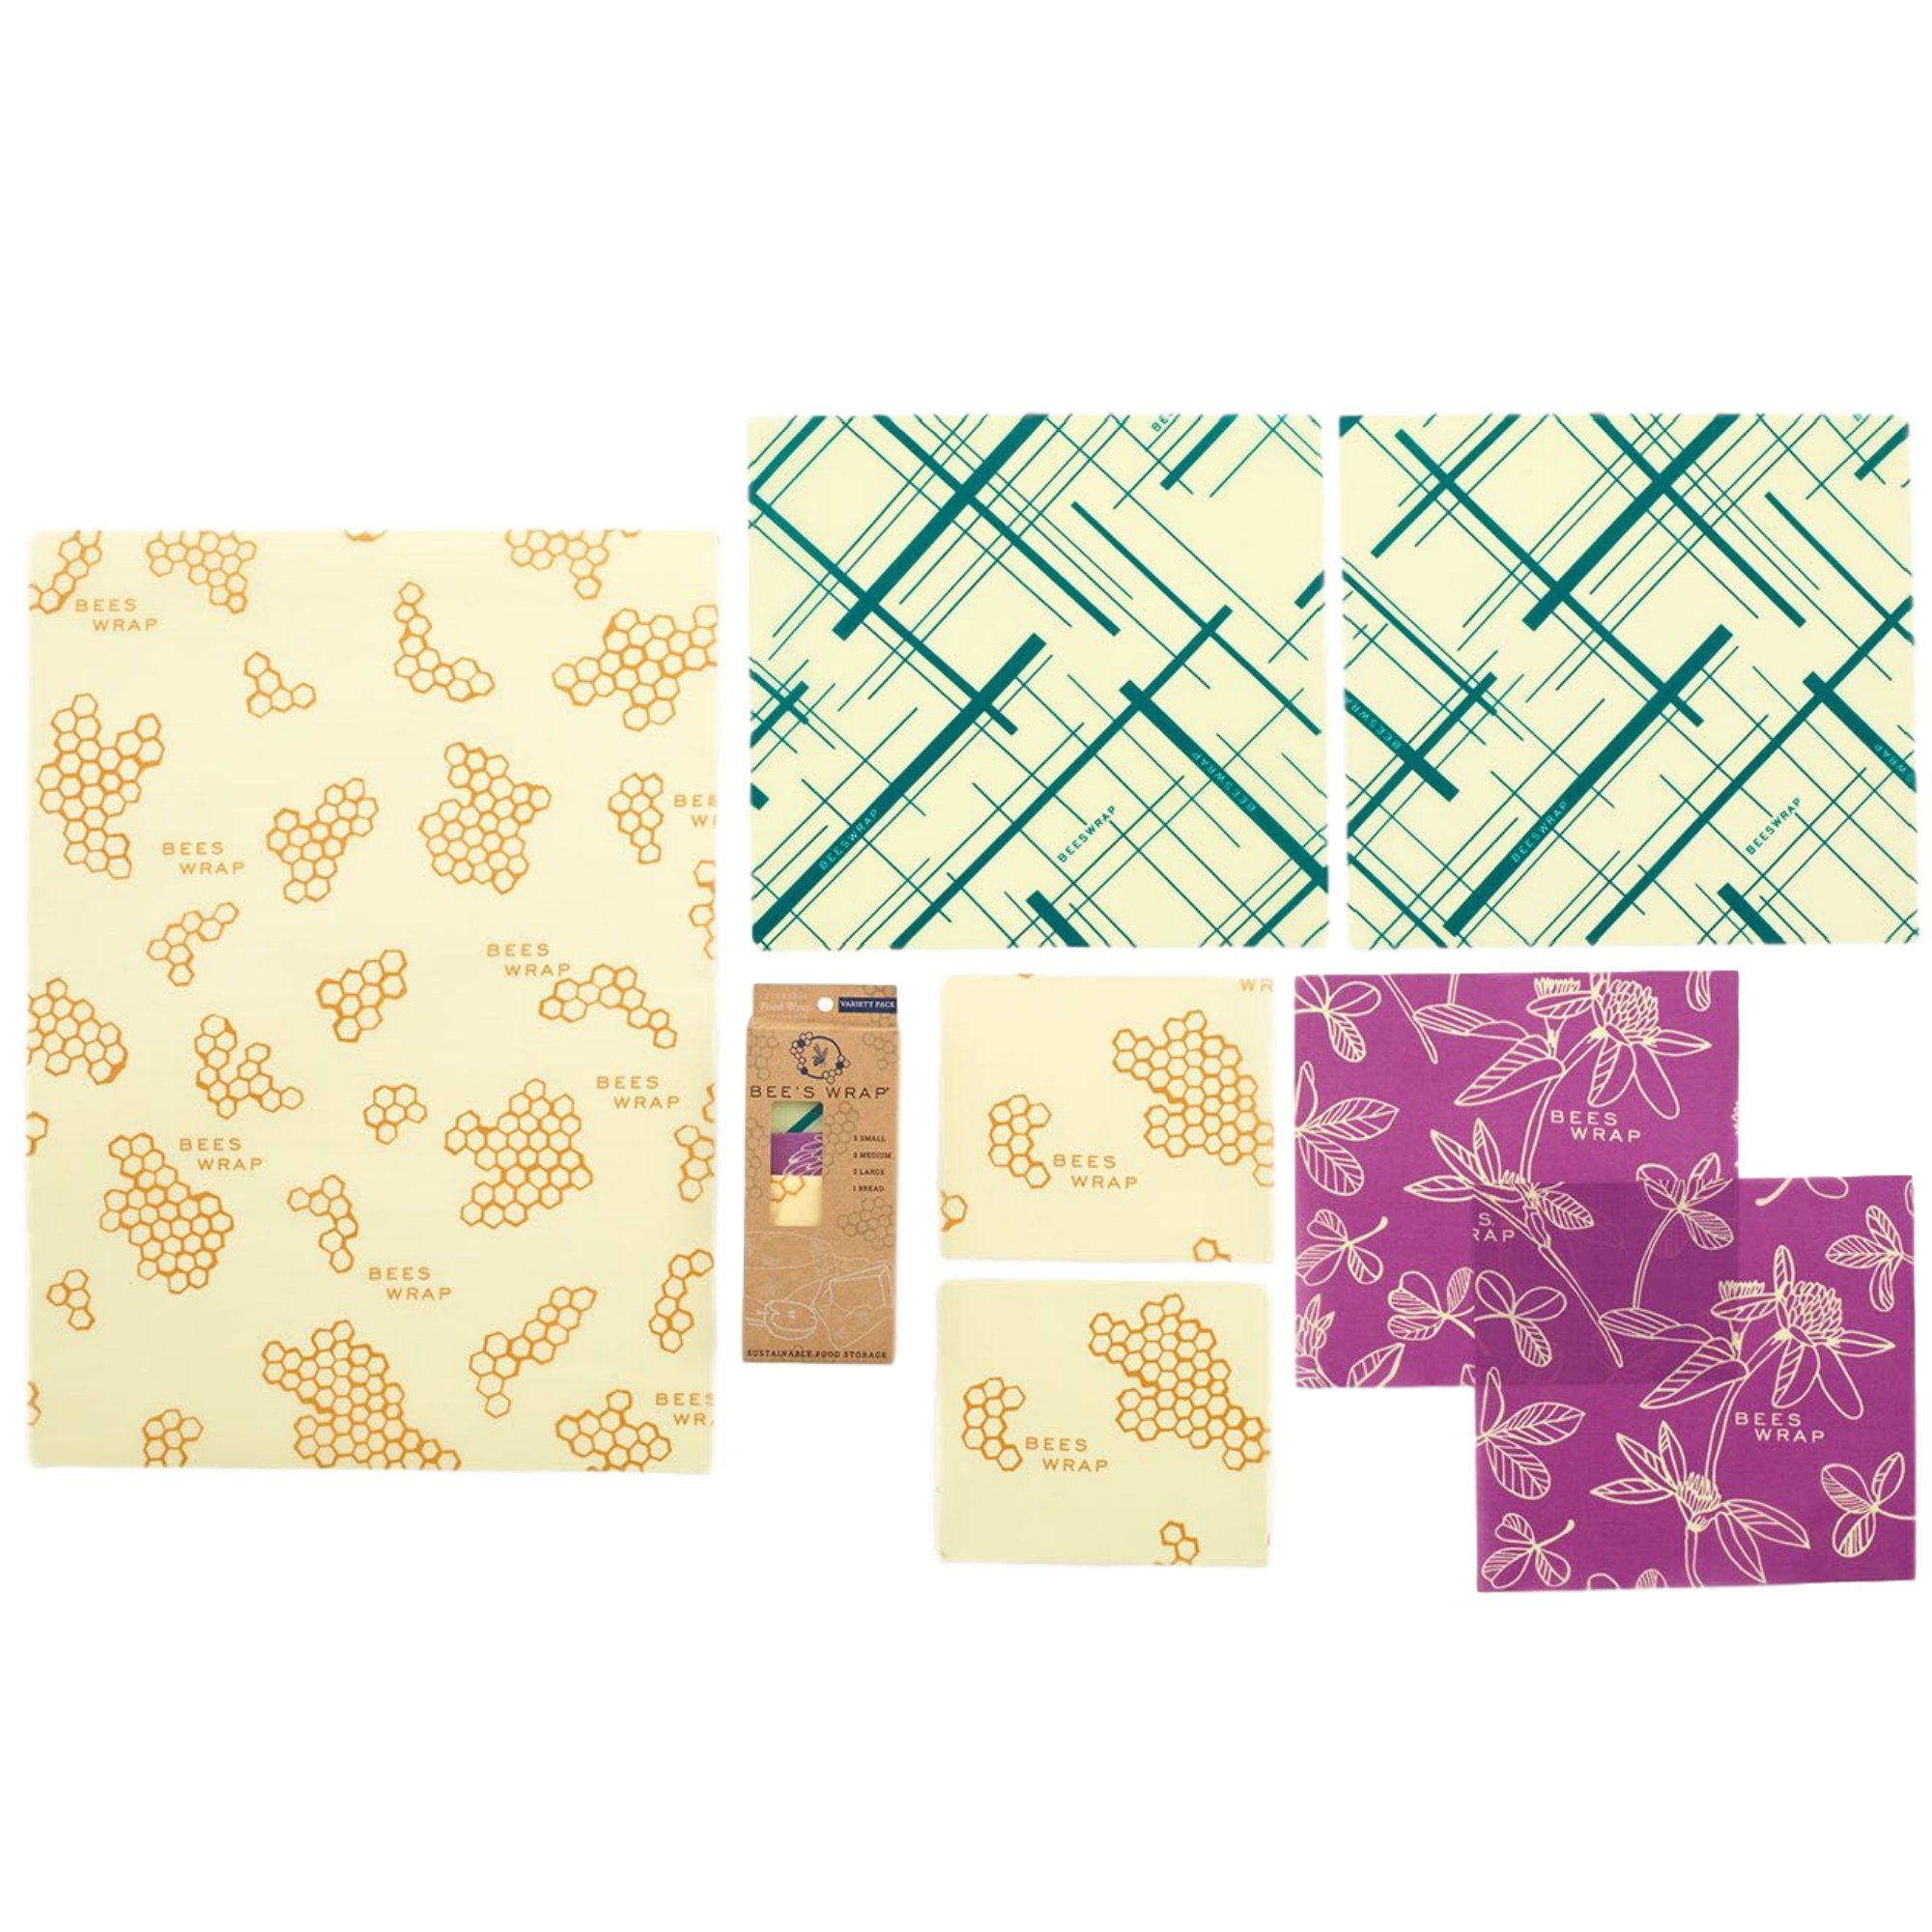 Bee's Wrap Variety Pack, Eco Friendly Reusable Food Wraps, Sustainable Plastic Free Food Storage - 2 Small, 2 Medium, 2 Large, 1 Bread